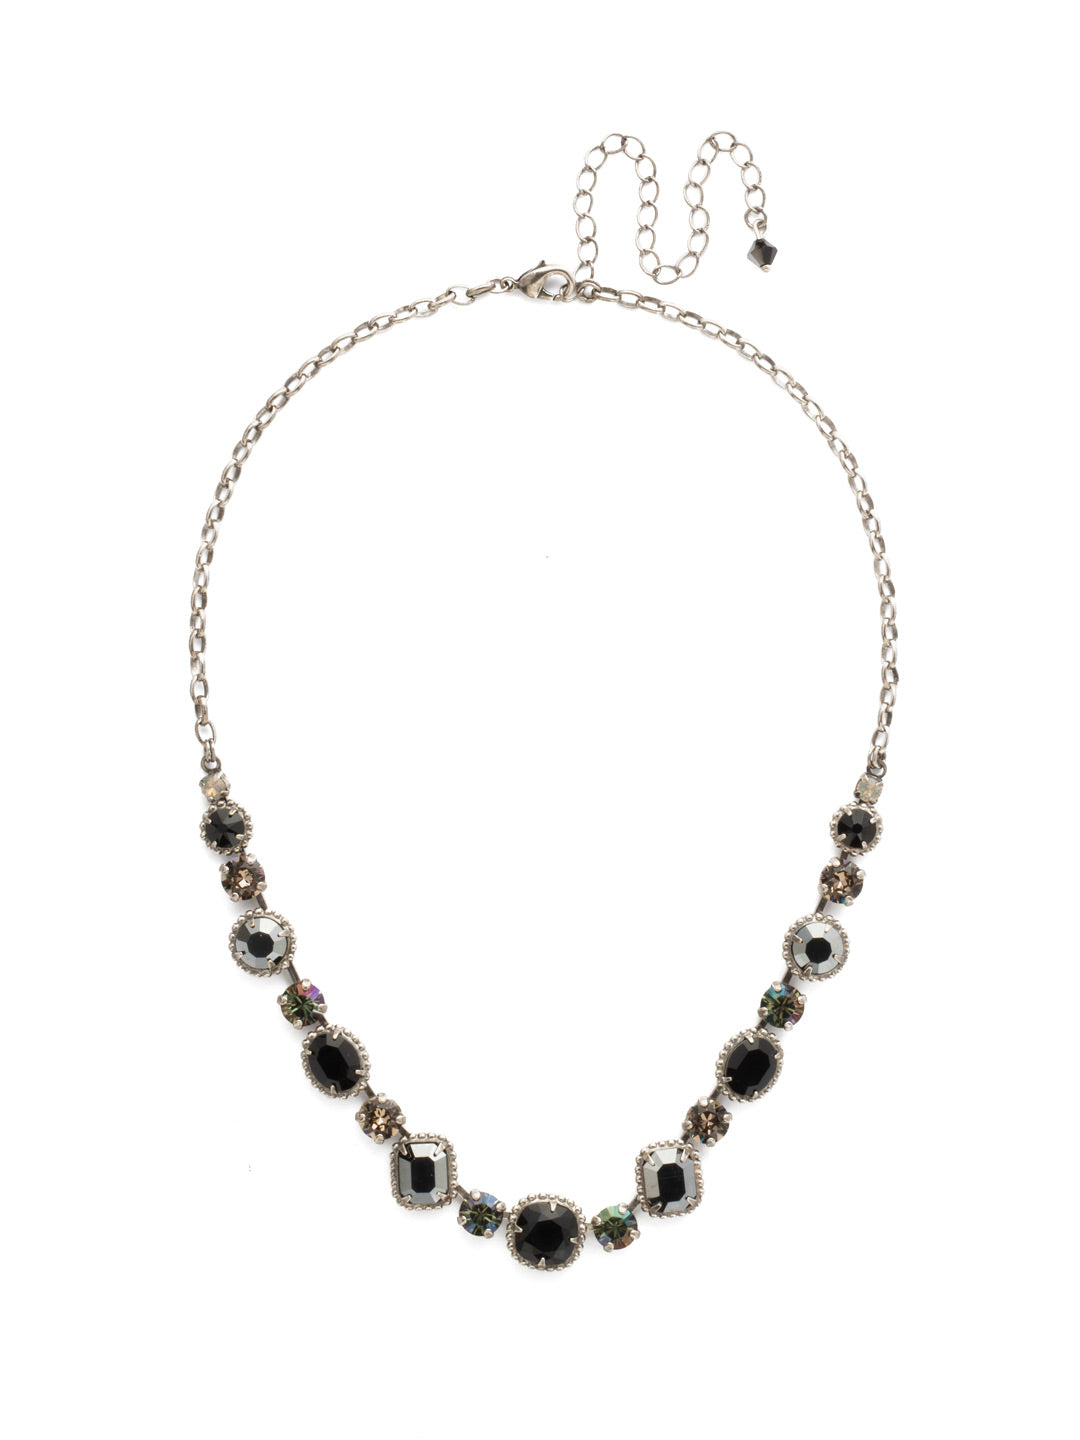 Embellished Elegance Necklace - NDK14ASBON